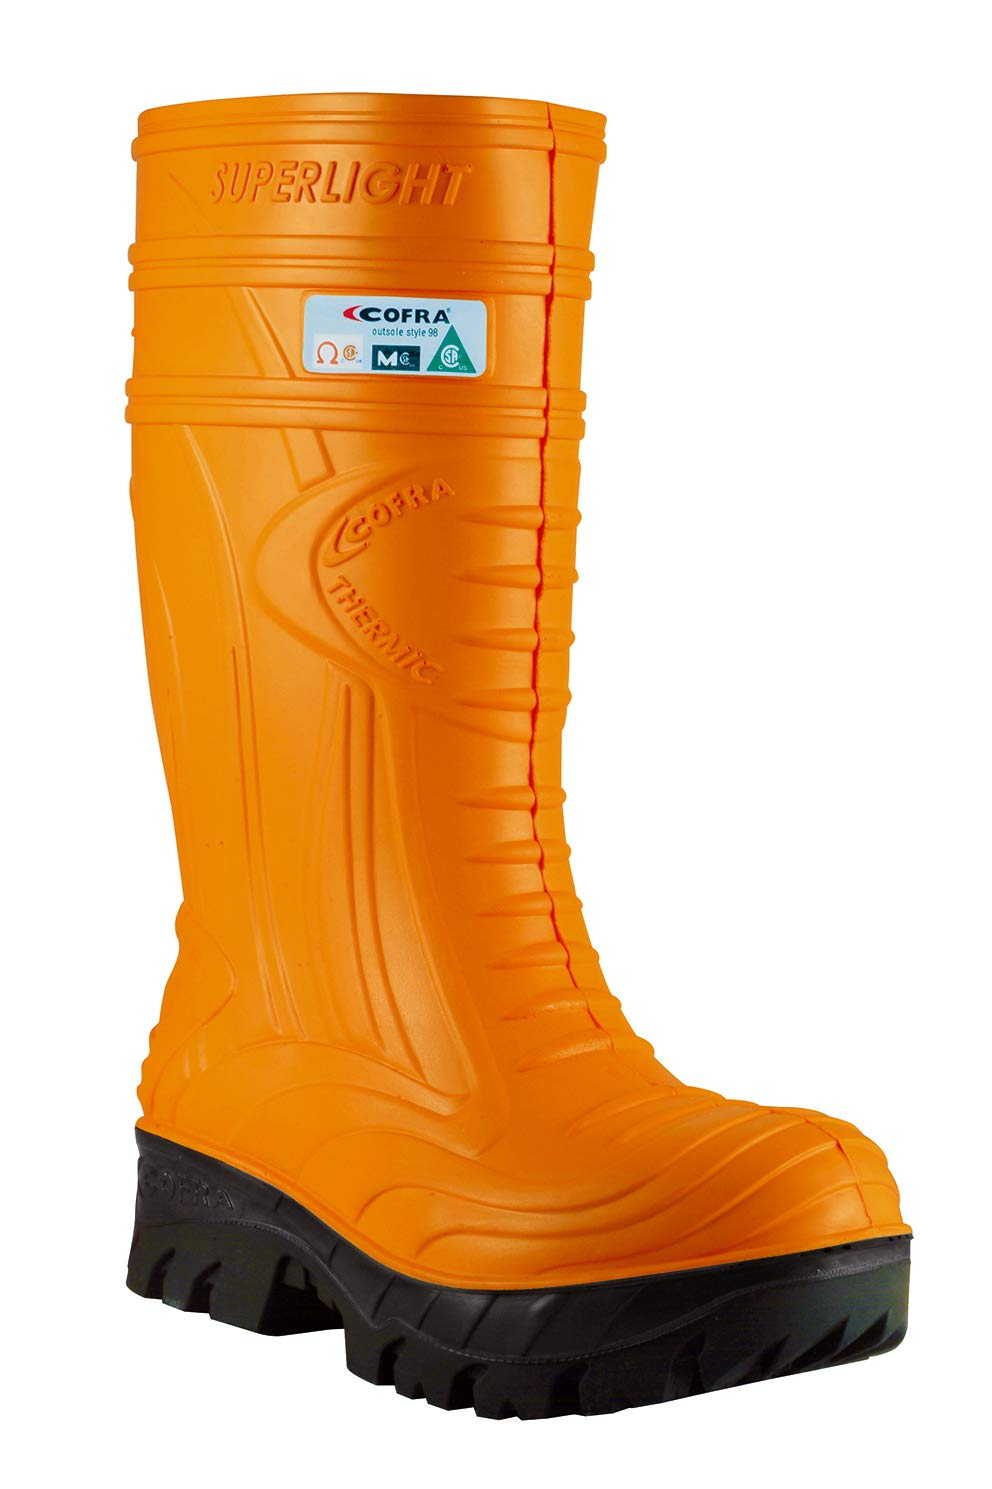 COFRA Waterproof Work Boots - THERMIC Cold Weather Rain Boot with Composite Safety Toe & Slip Resistant Nitrile Outsole